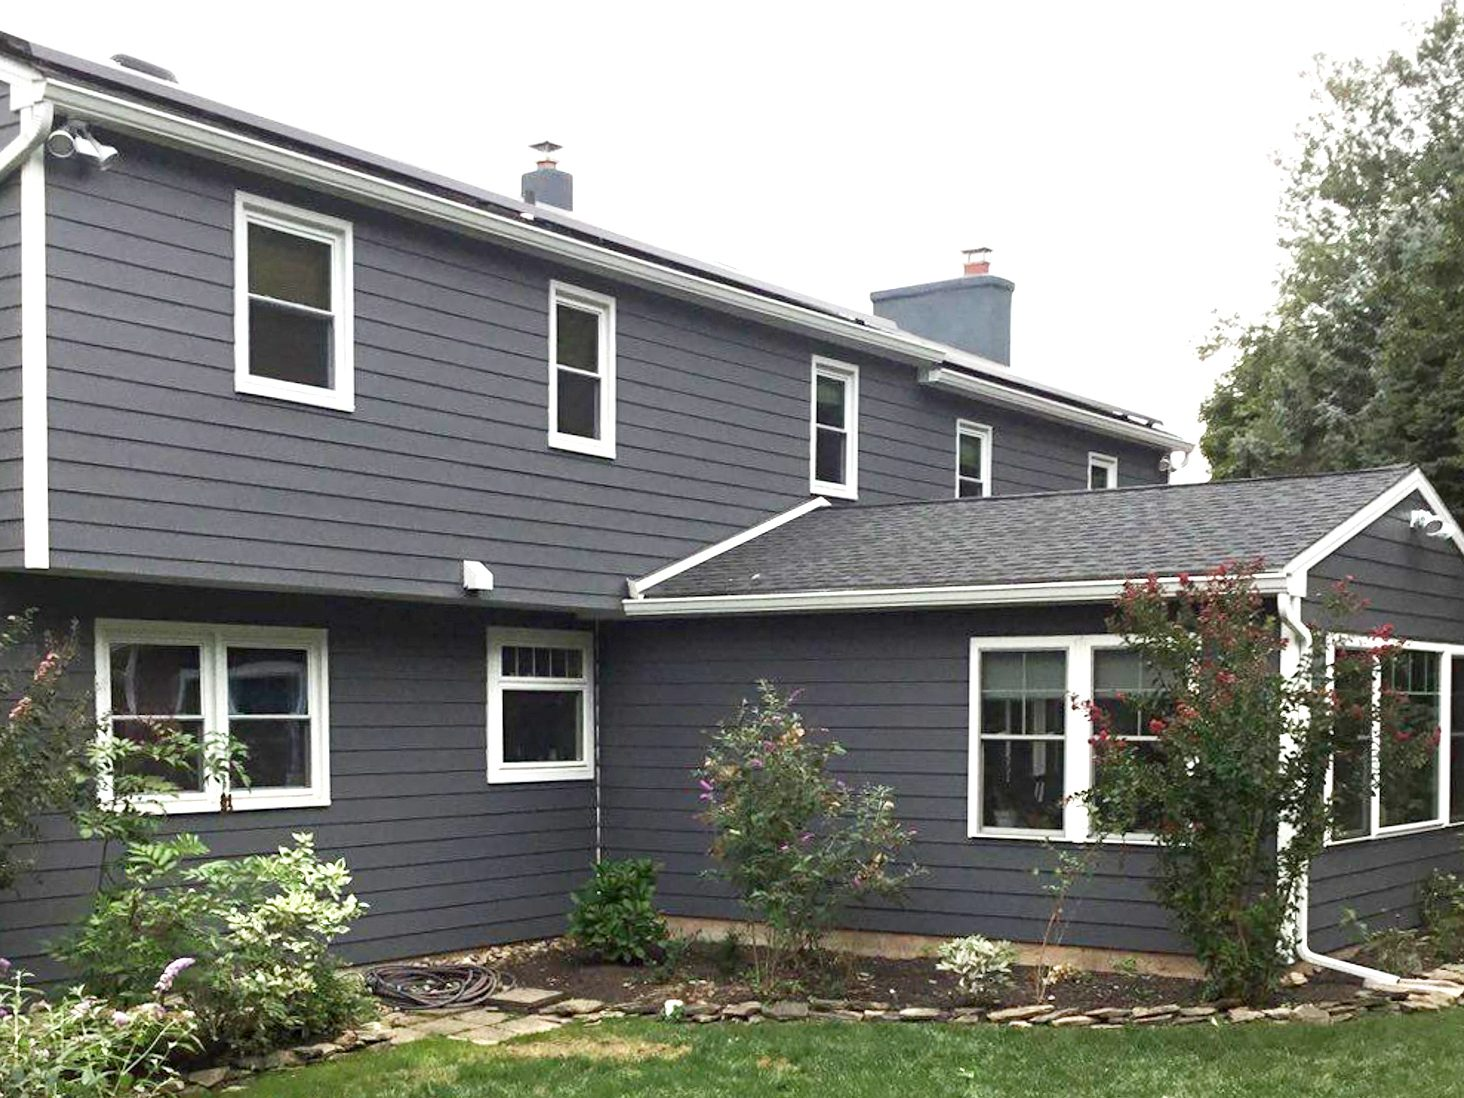 smucker exteriors west chester siding installs and repairs